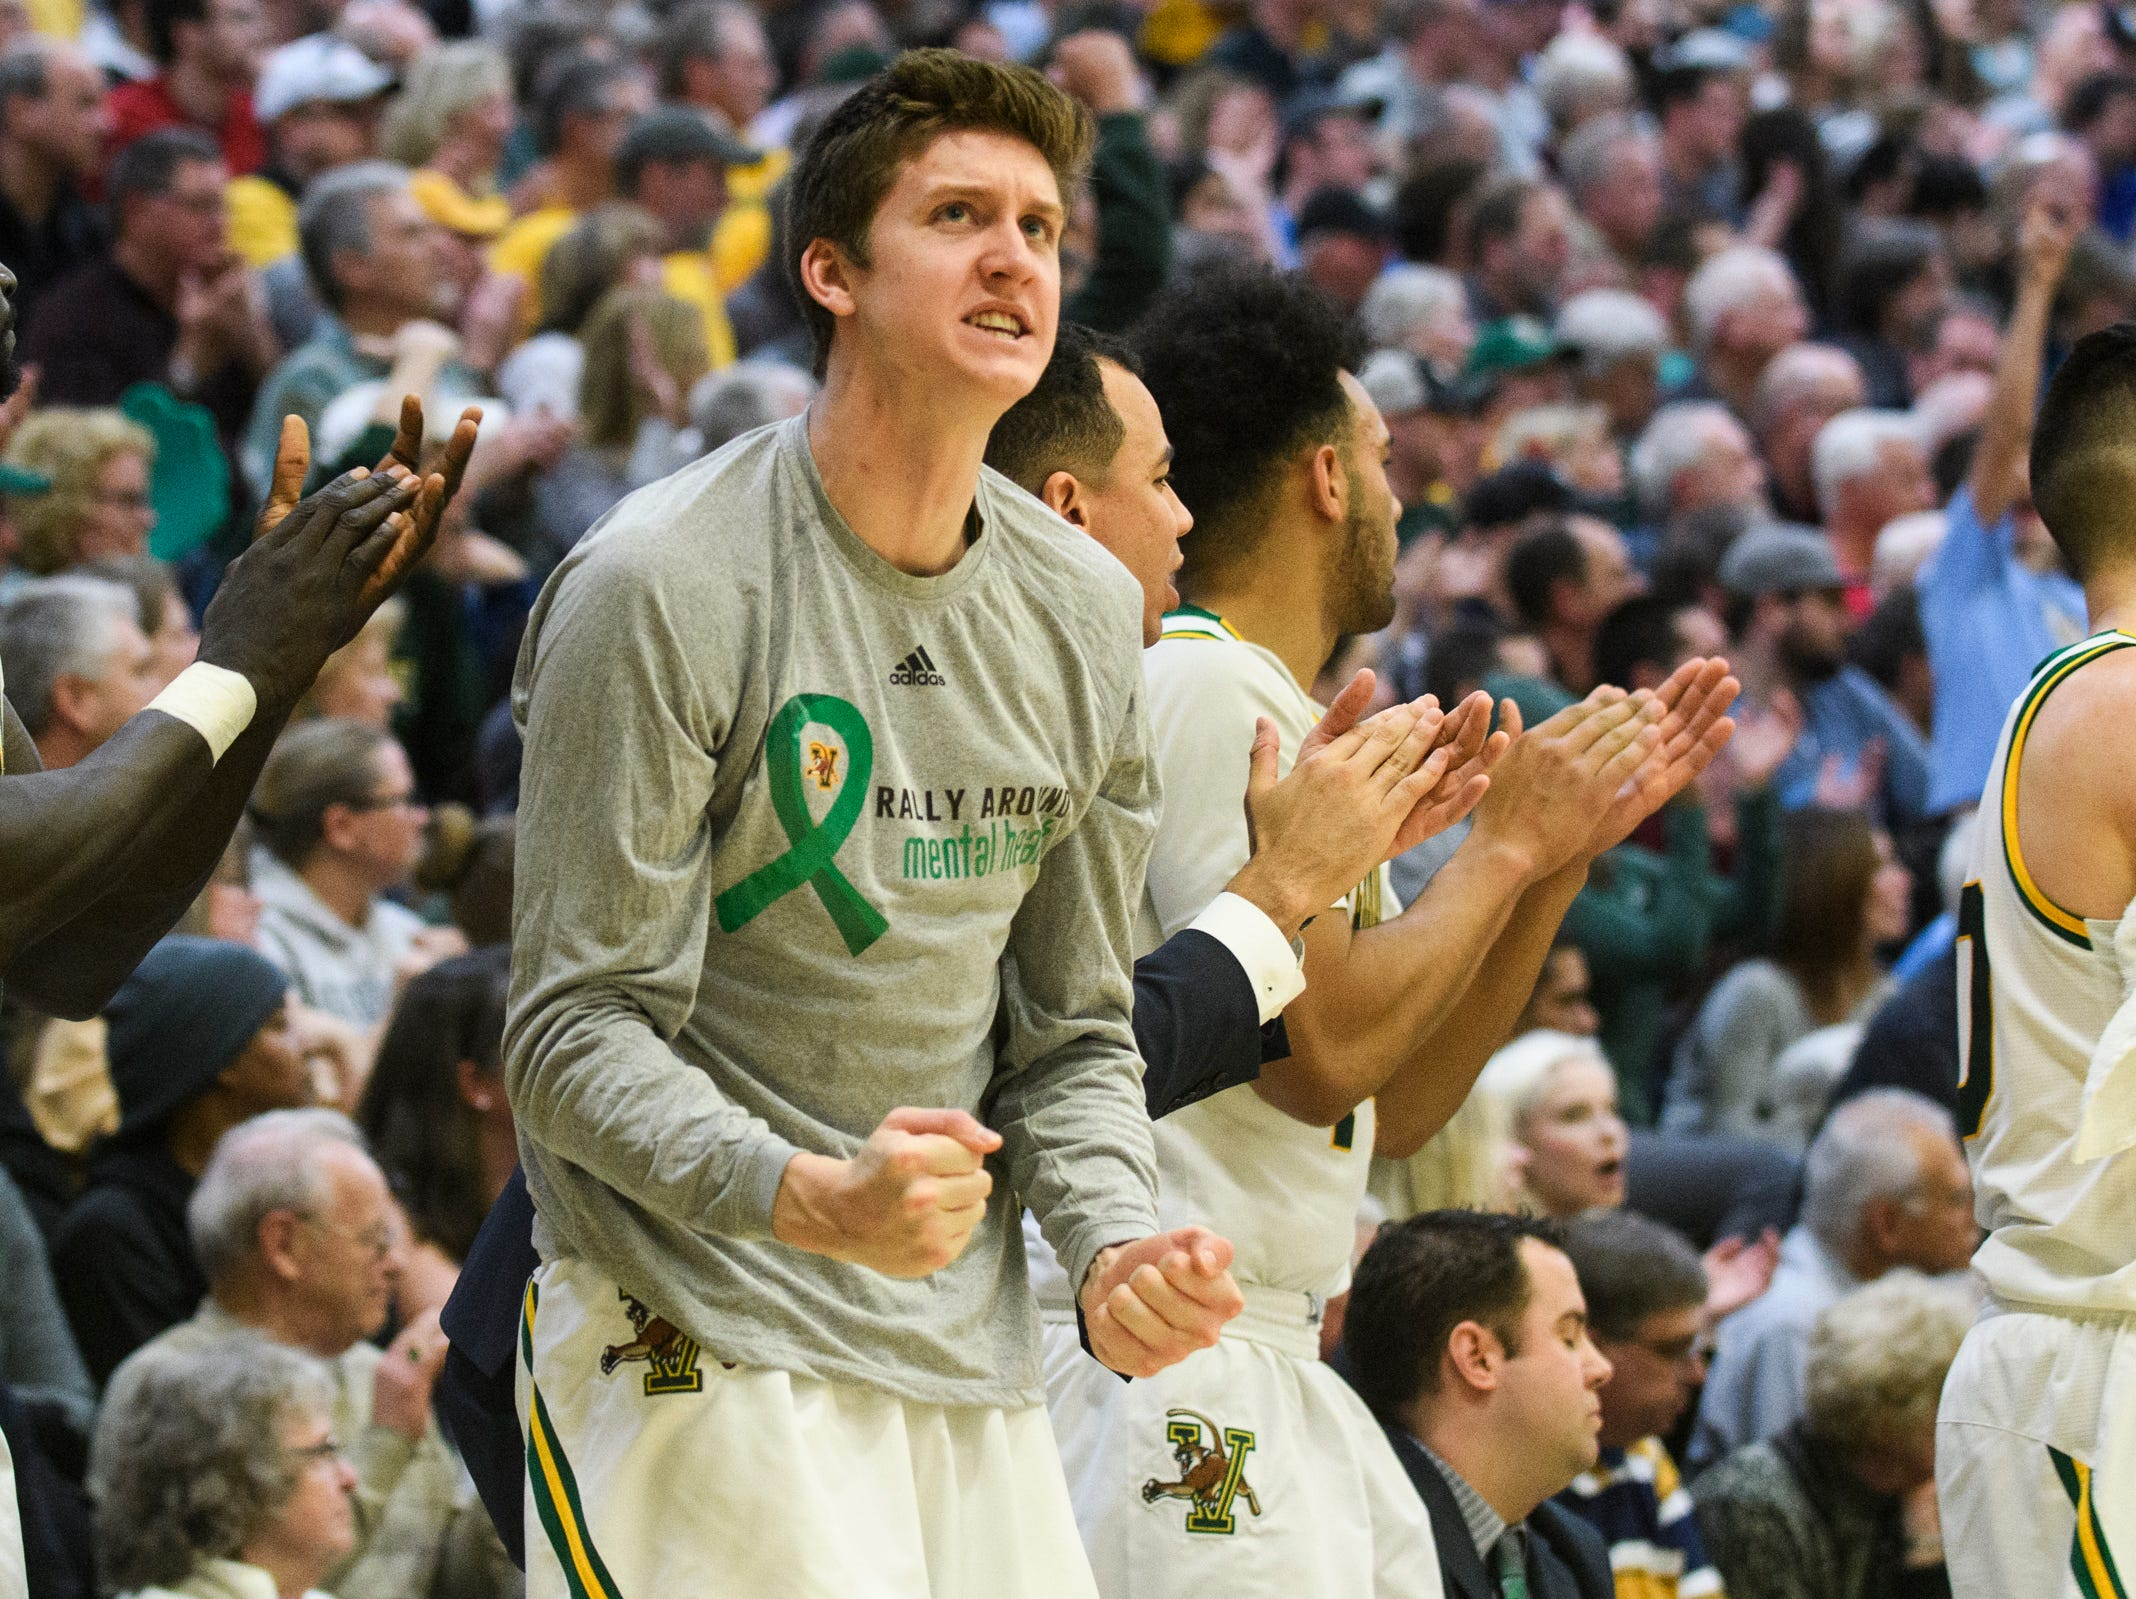 Vermont forward Bailey Patella (12) cheers for the team during the men's basketball game between the Stony Brook Seawolves and the Vermont Catamounts at Patrick Gym on Saturday night March 2, 2019 in Burlington, Vermont.